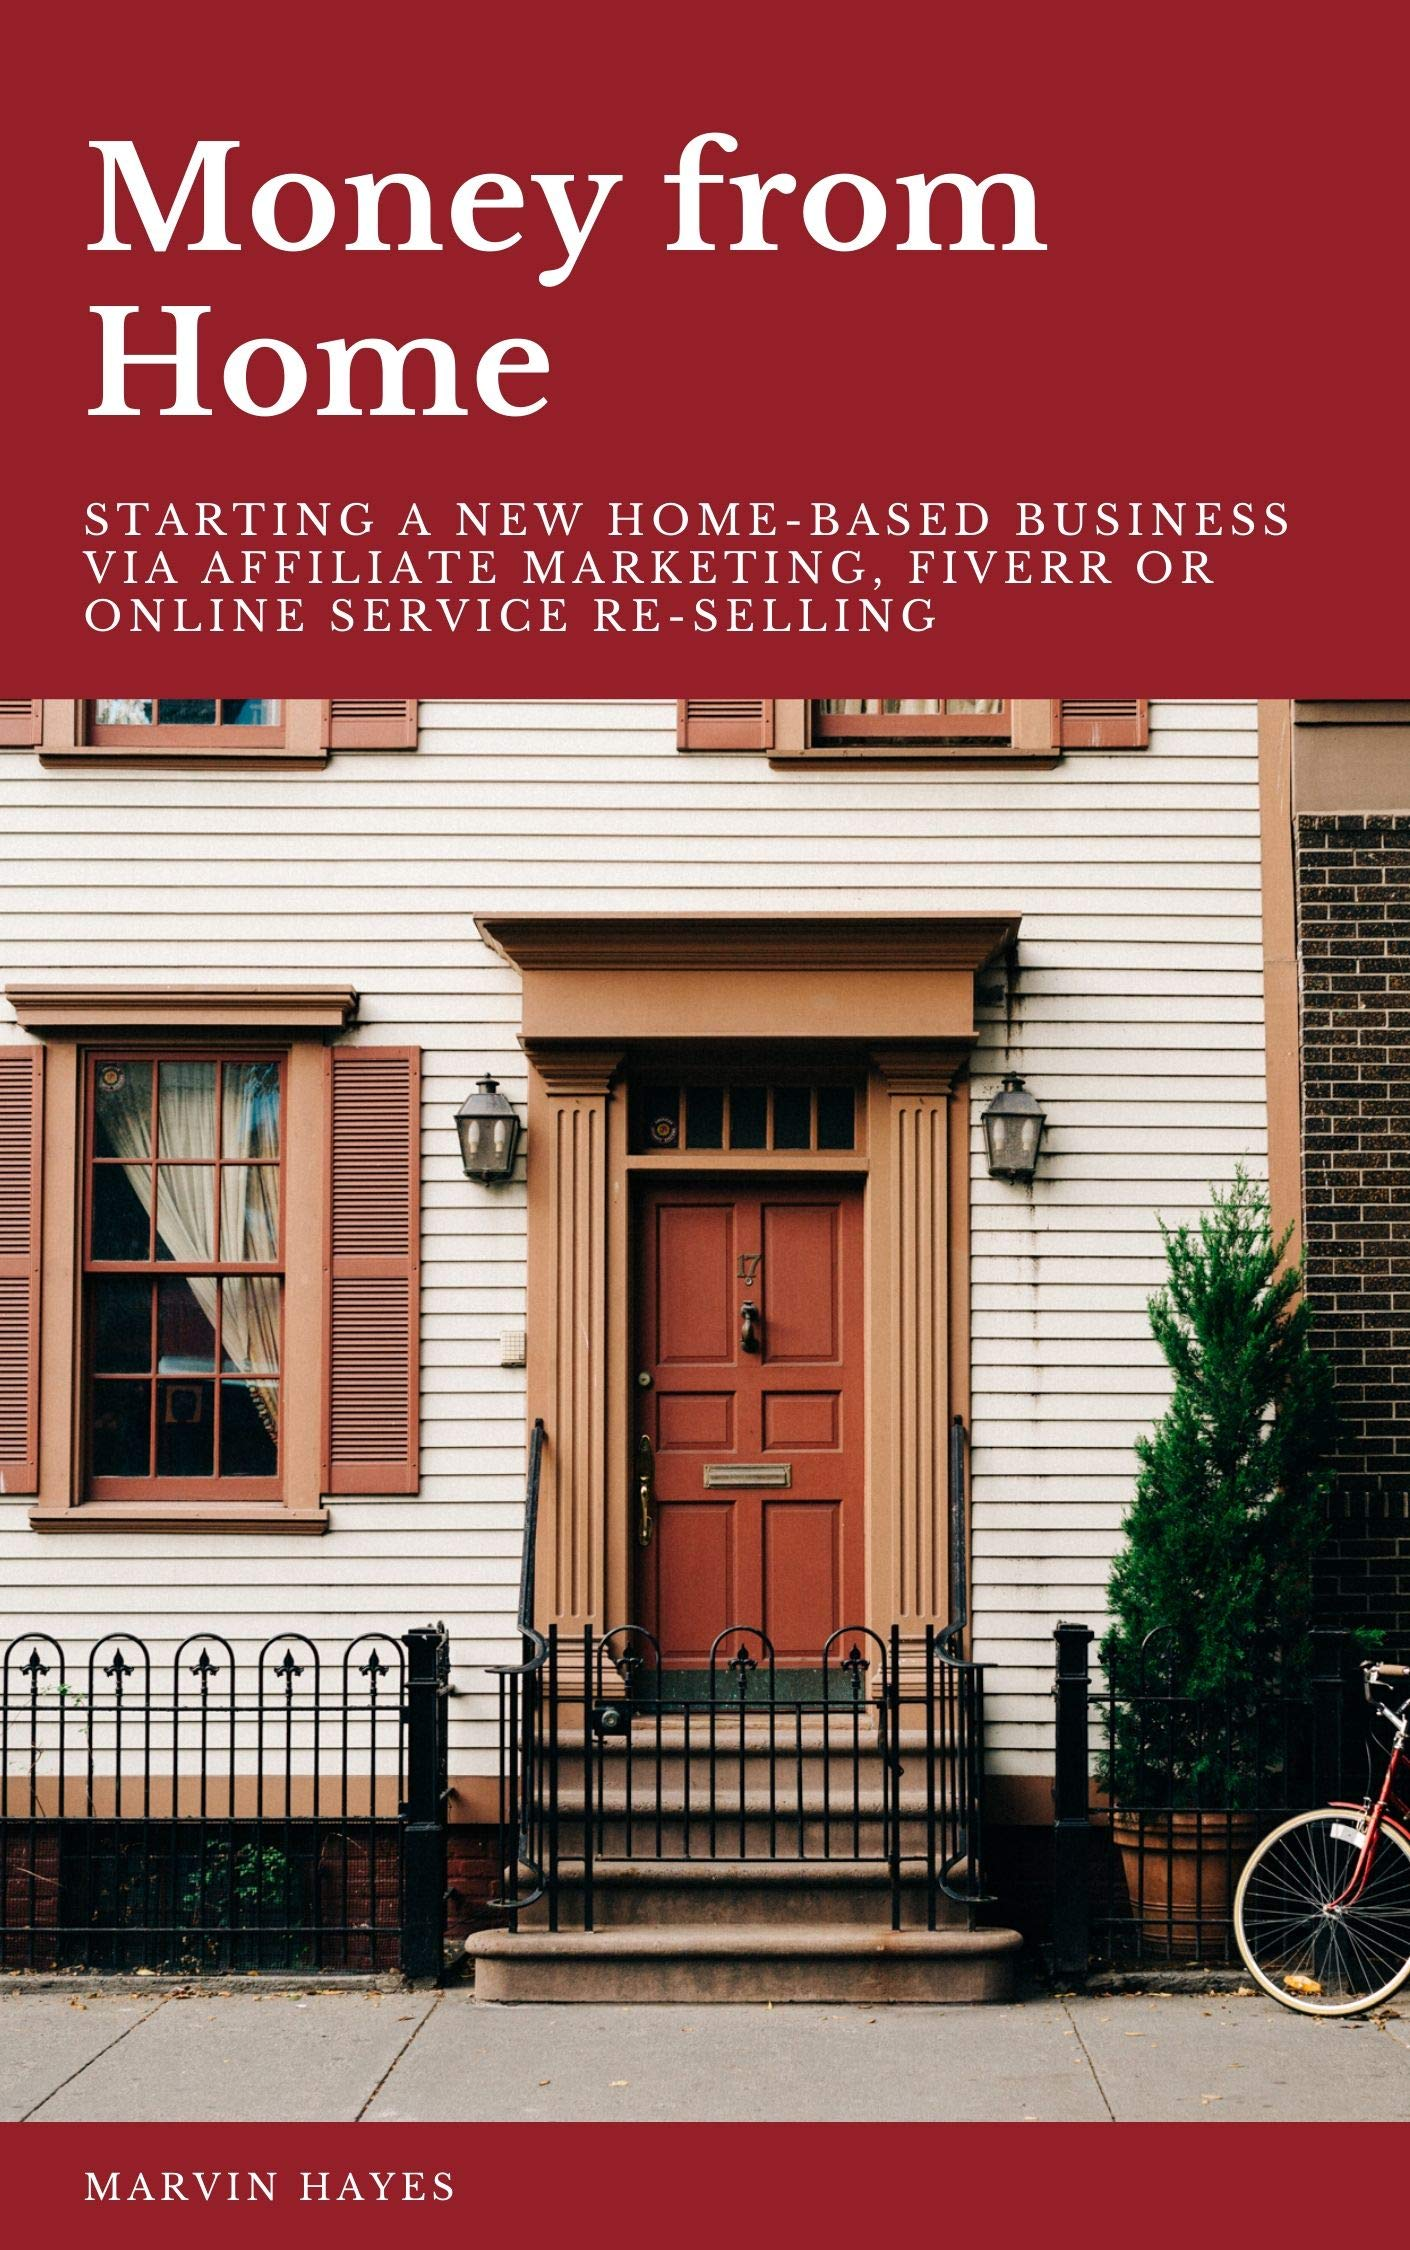 Money from Home: Starting a New Home-Based Business via Affiliate Marketing, Fiverr or Online Service Re-selling